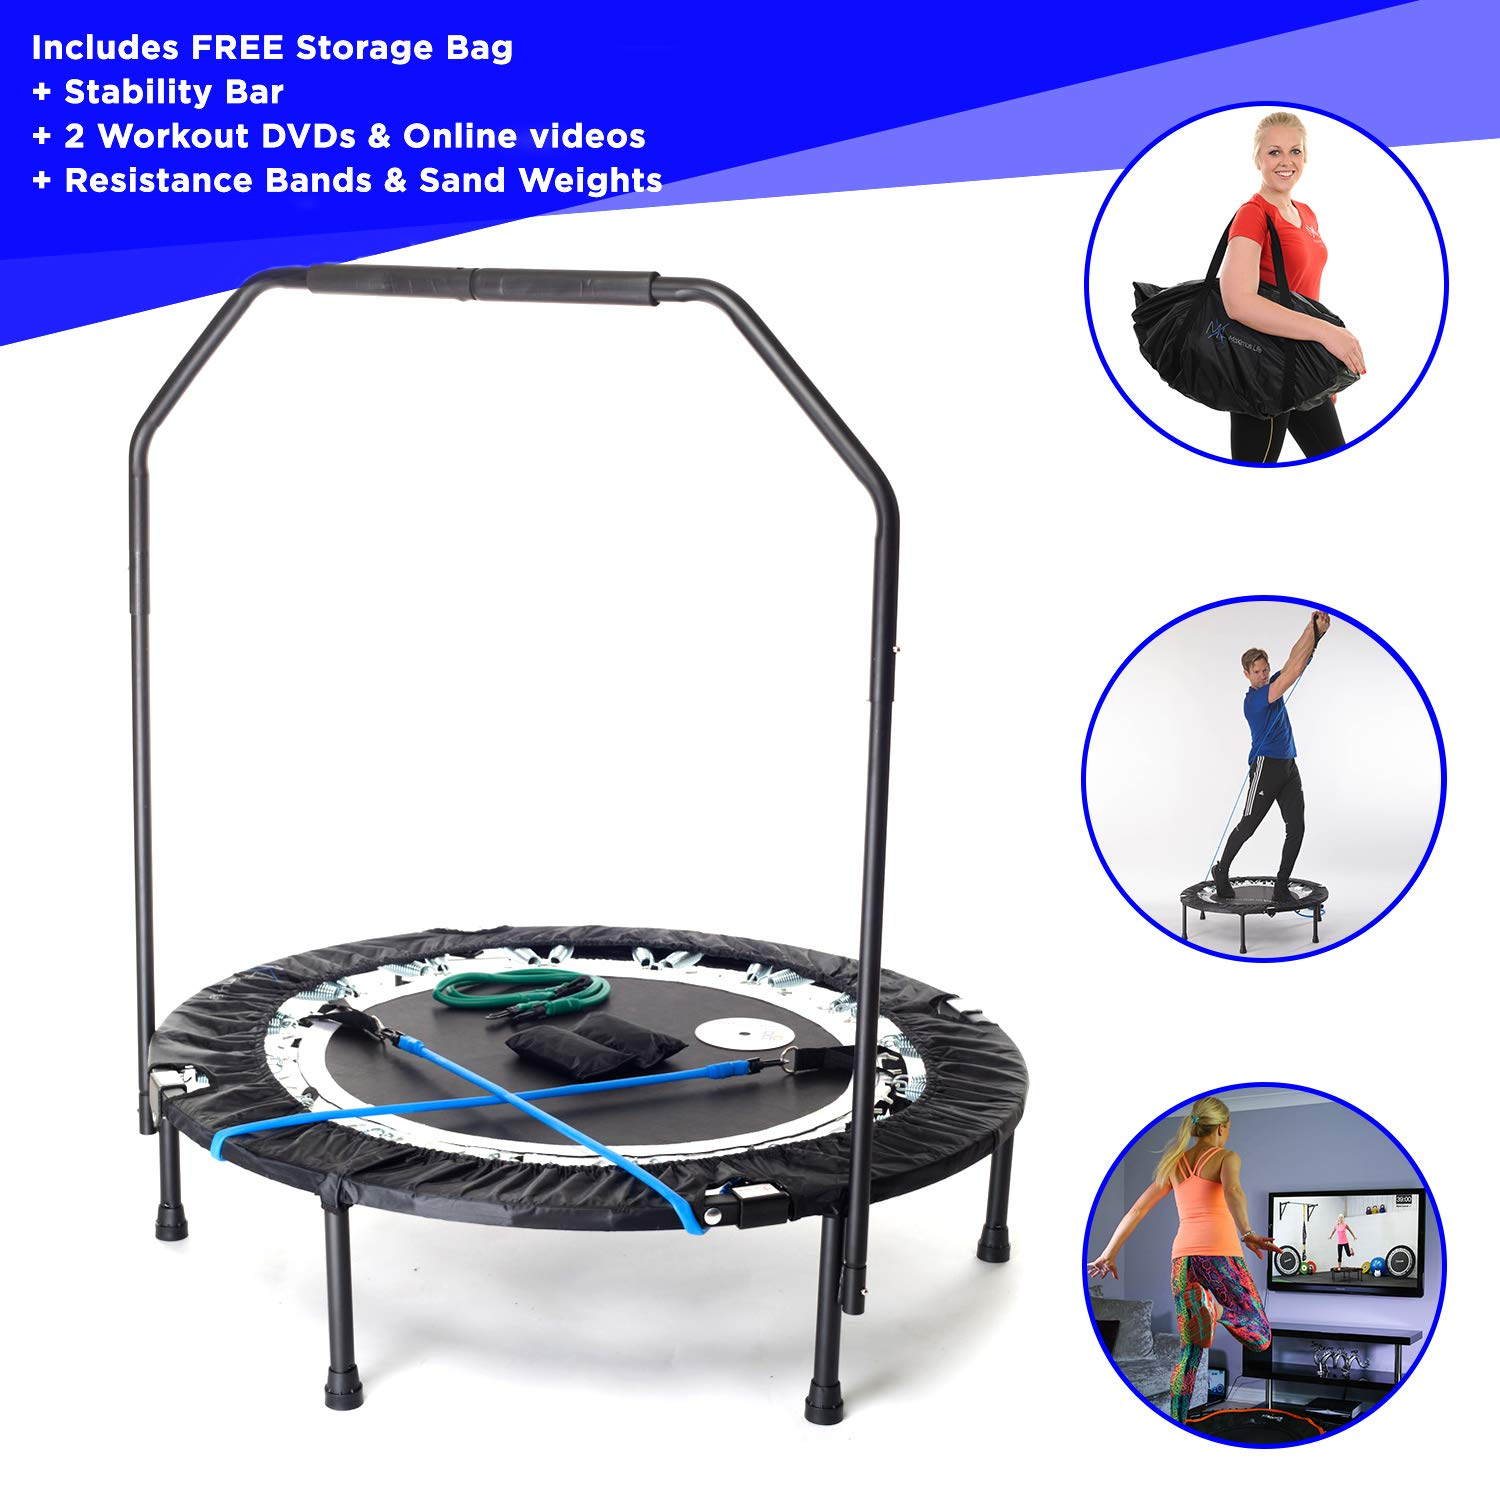 MaXimus PRO Folding Rebounder Voted 1 Indoor Exercise Mini Trampoline For Adults With Bar Best Home Gym for Fitness Lose Weight FREE Storage Bag, Resistance Bands, ONLINE DVD Workouts